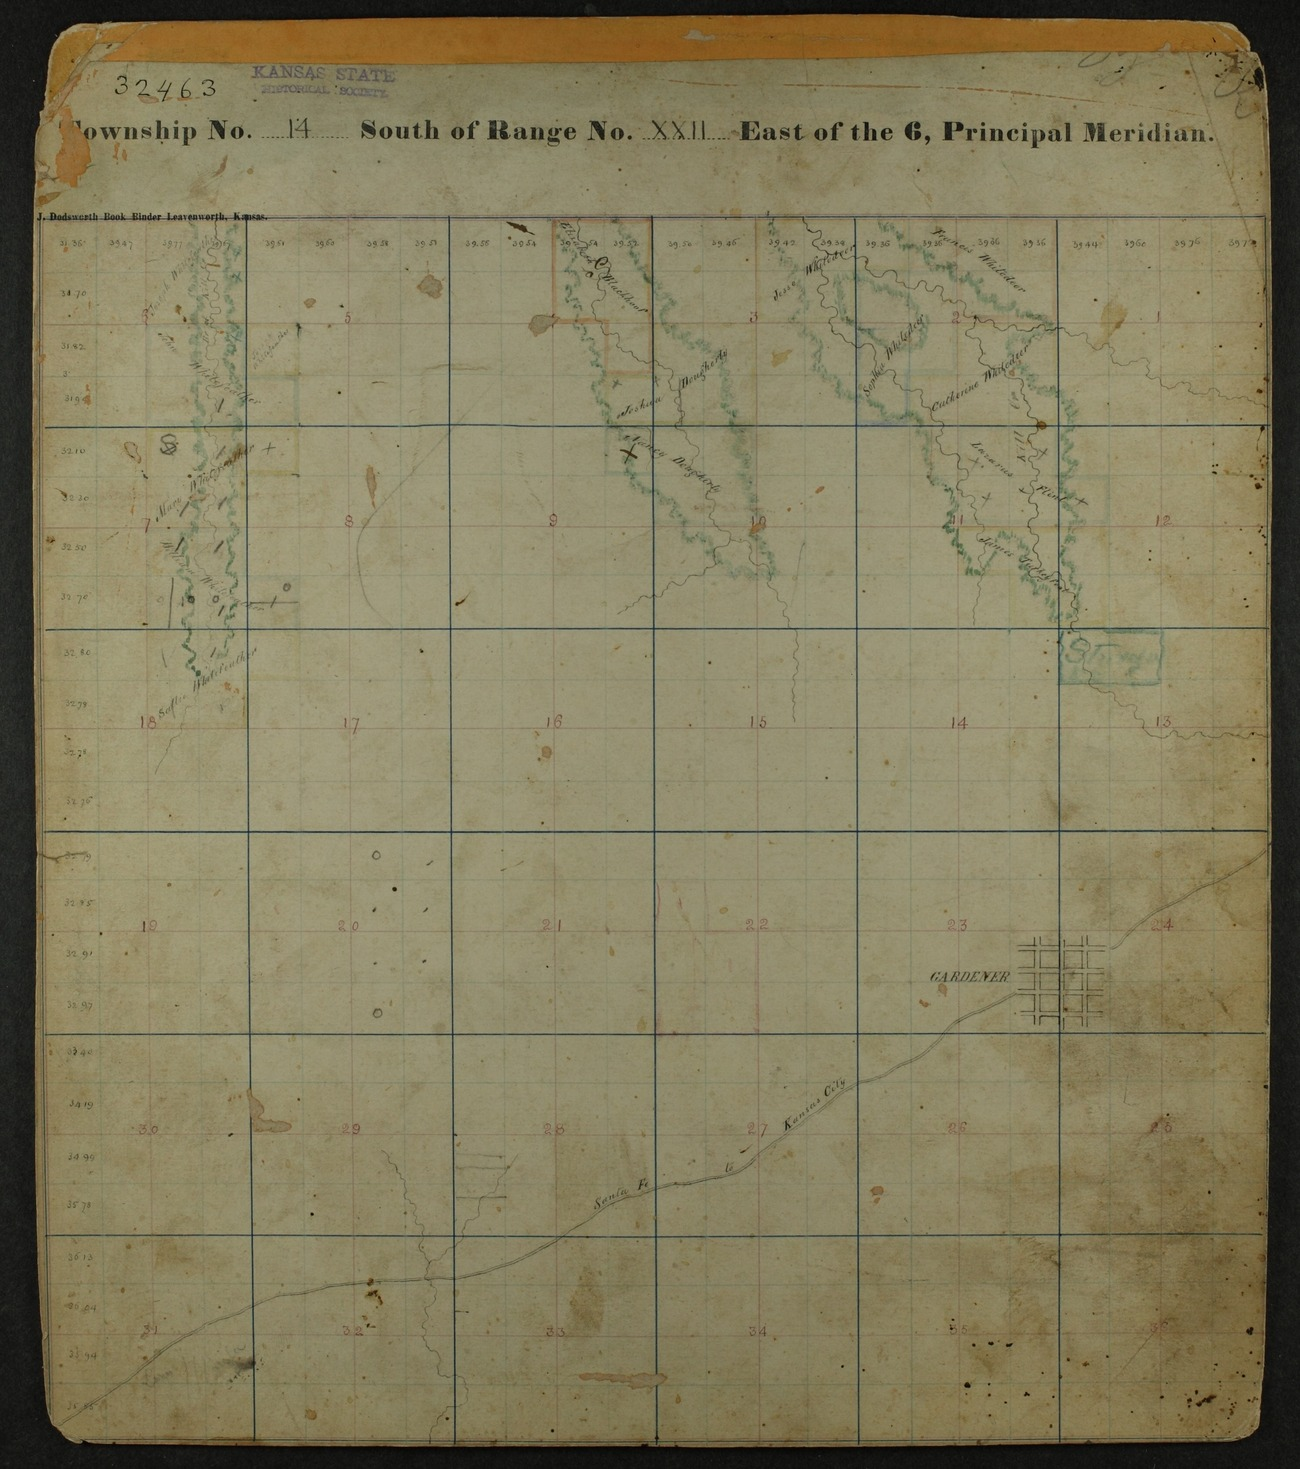 Shawnee Indian reservation plat maps of 1854 - 12